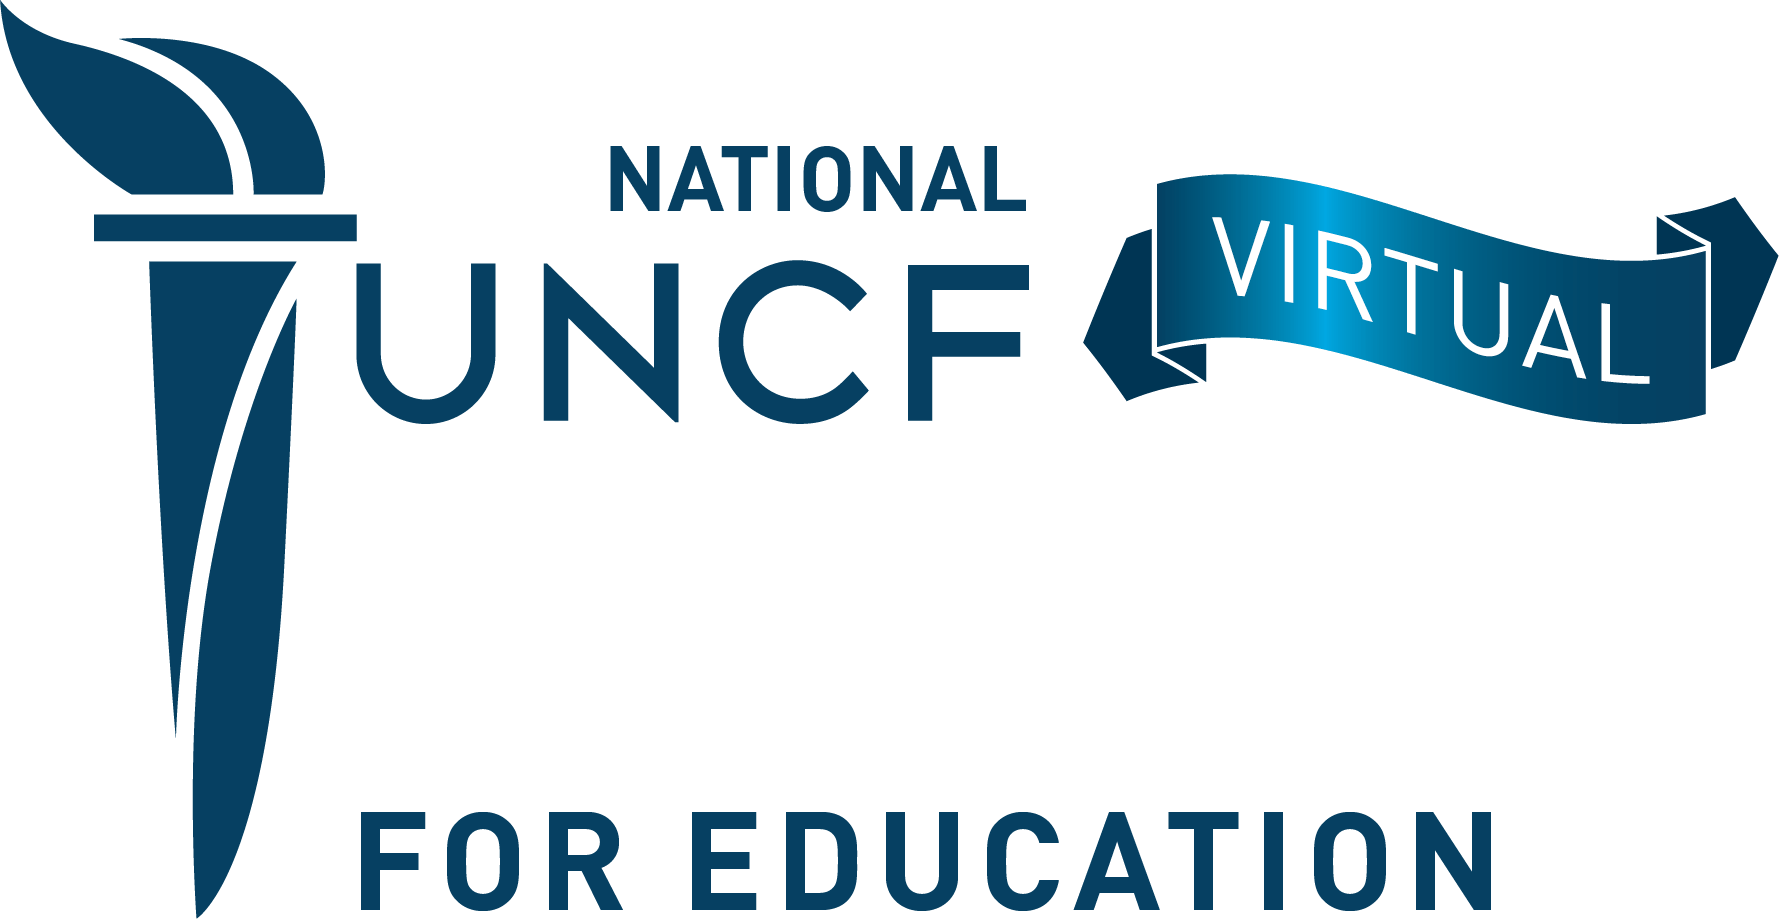 National UNCF Virtual Walk for Education